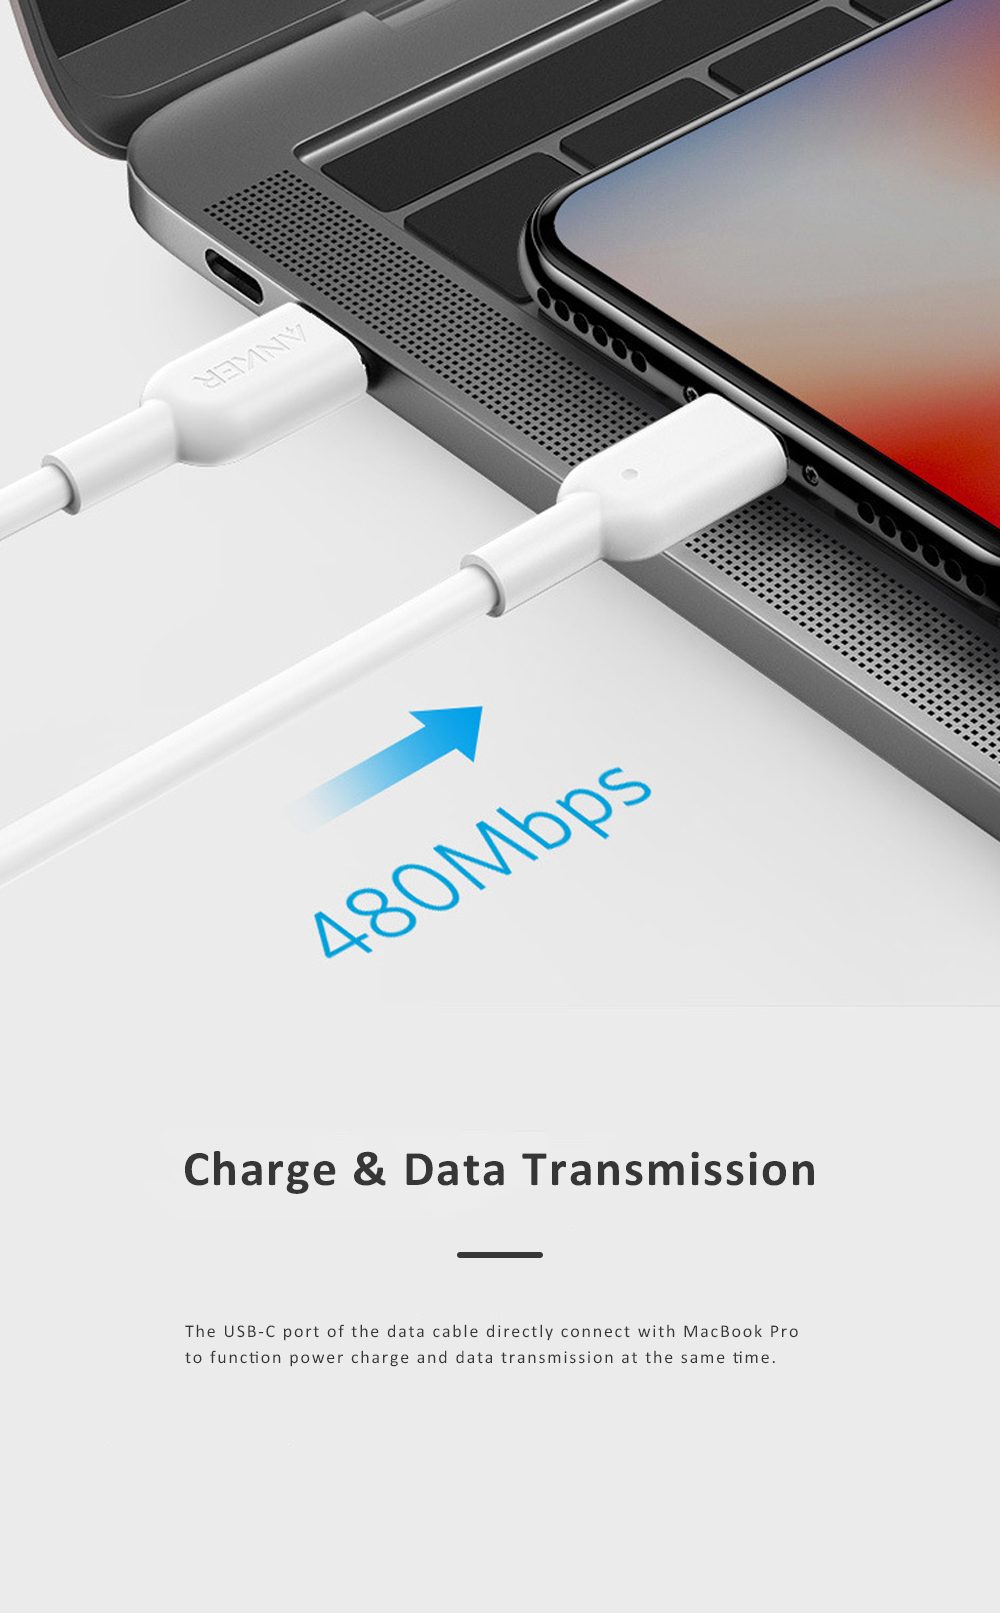 Anker Power Line USB-C to Lightning Data Cable PD Quick Charge Cable Compatible for iPhone iPad iPod Official Certified 2